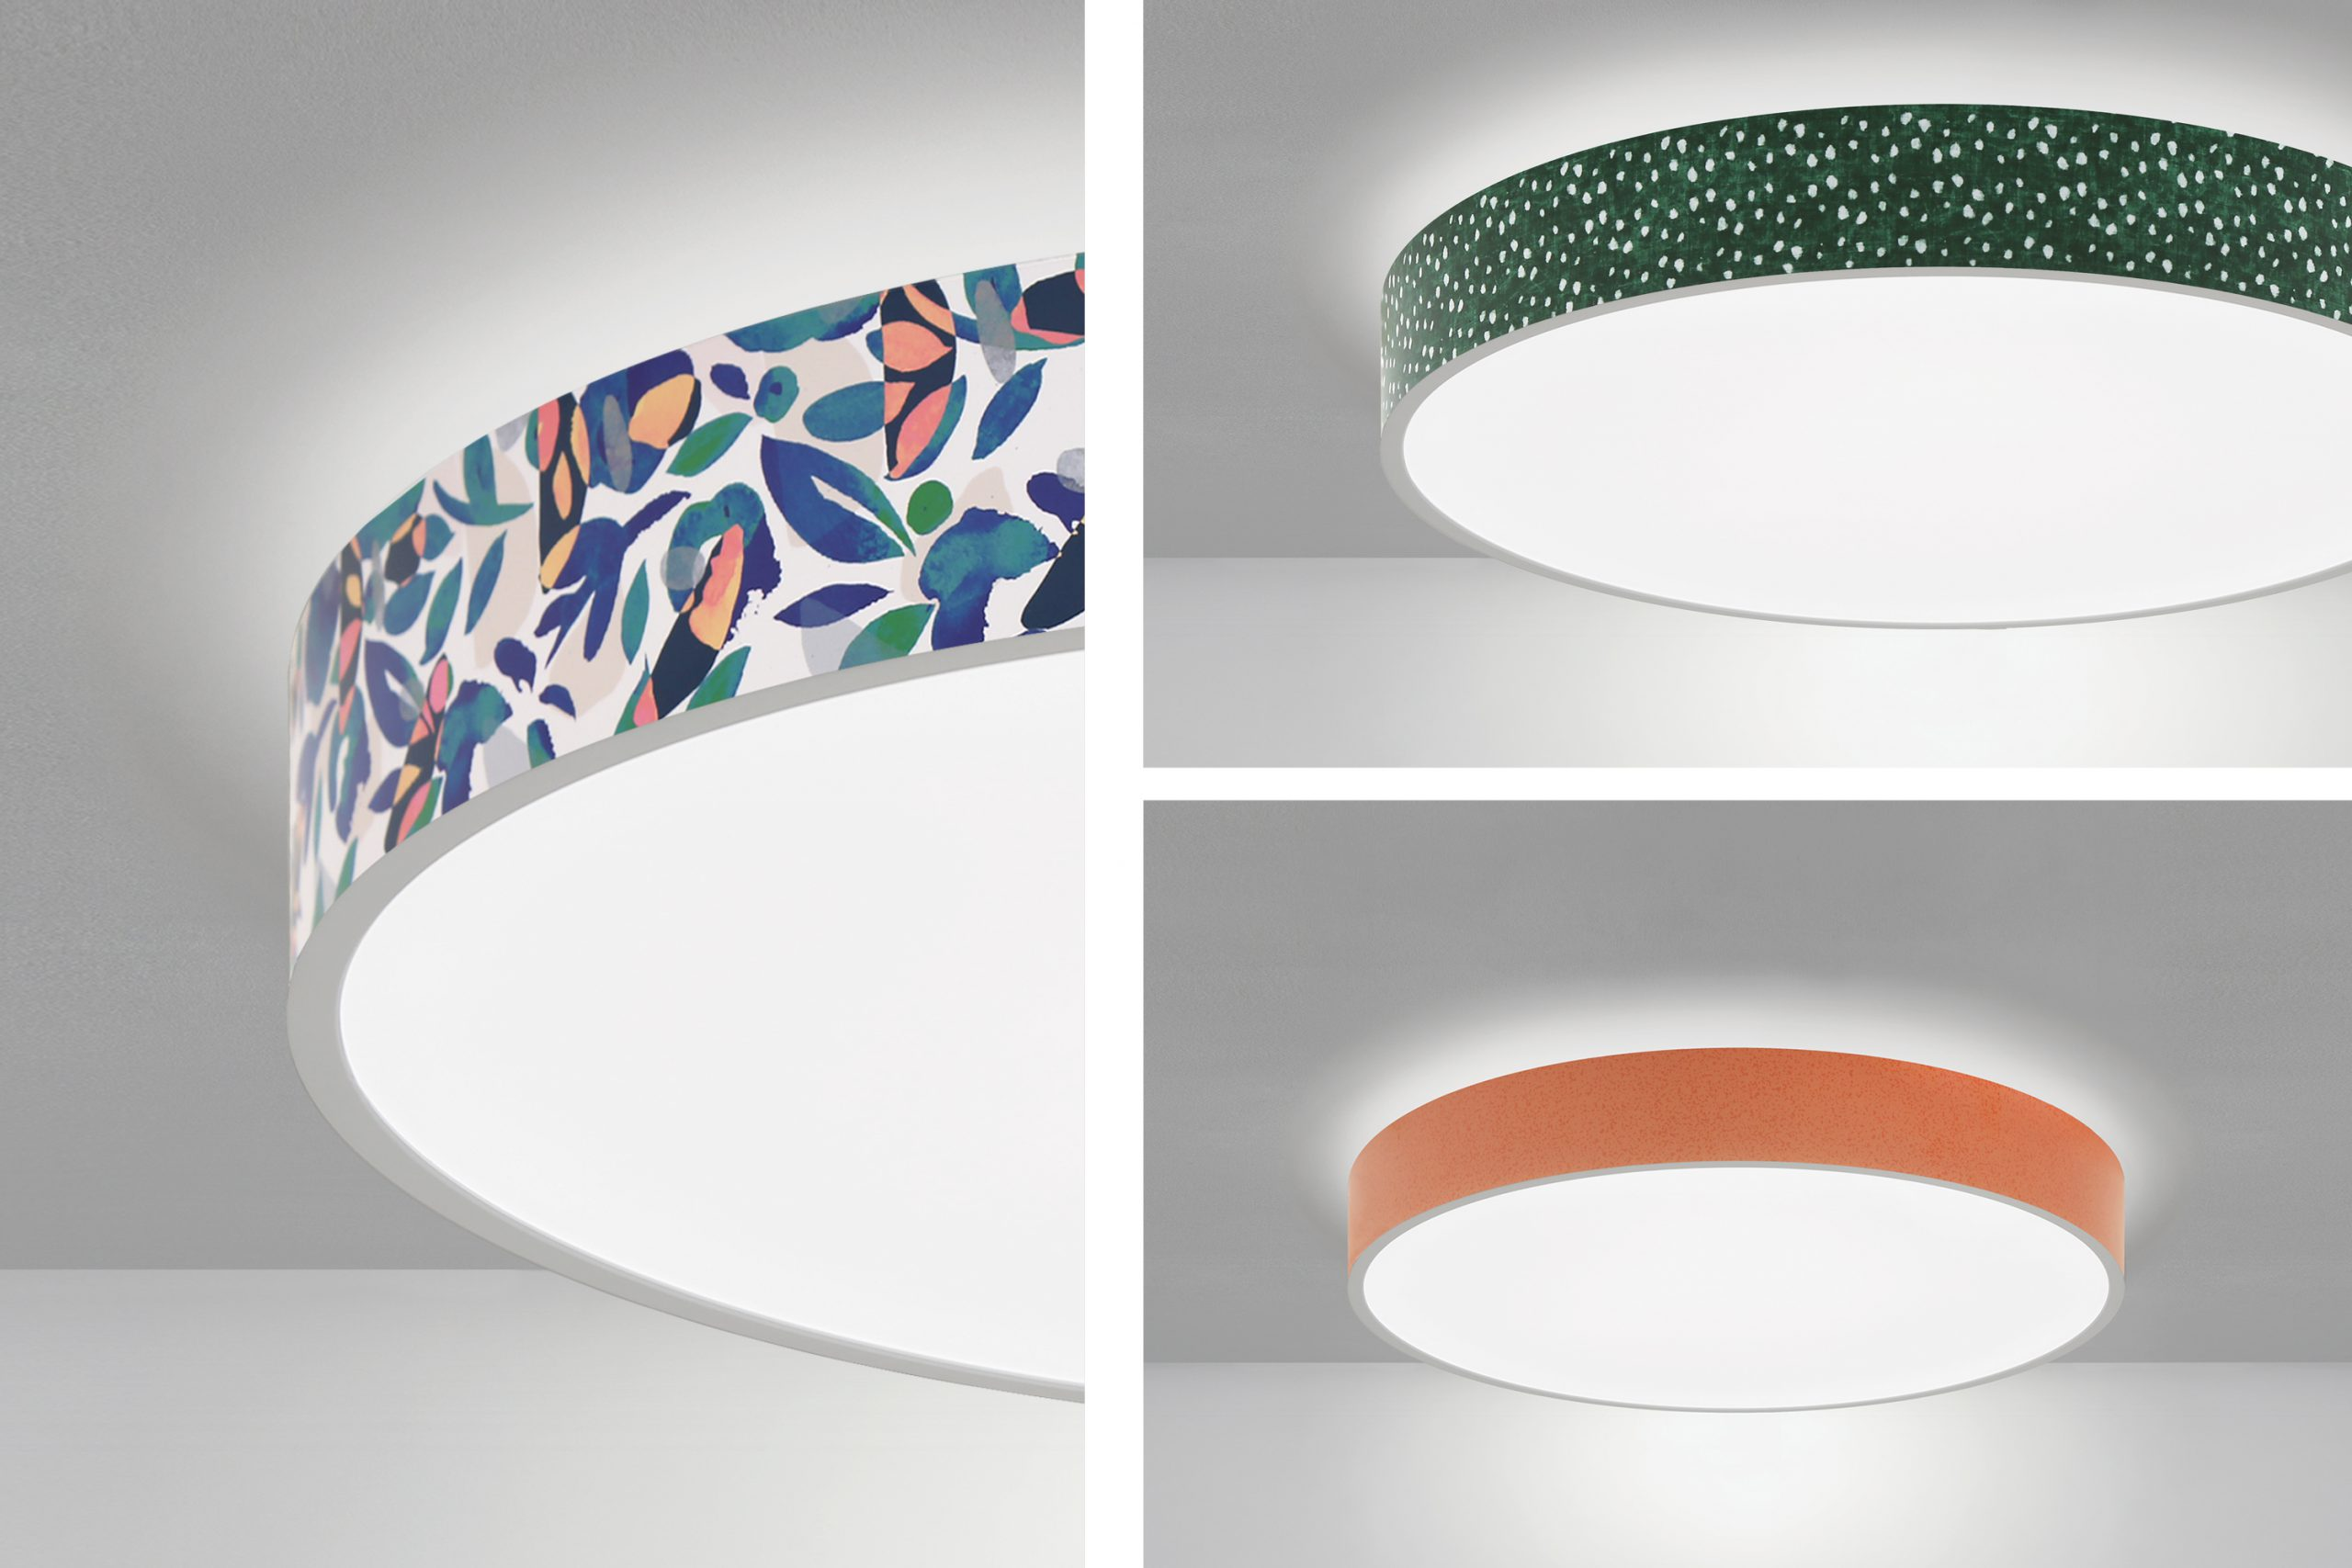 Lumetta packs a visual punch with the addition of 7 new boldly colored wraps and patterns now available with their MUSE luminaires.